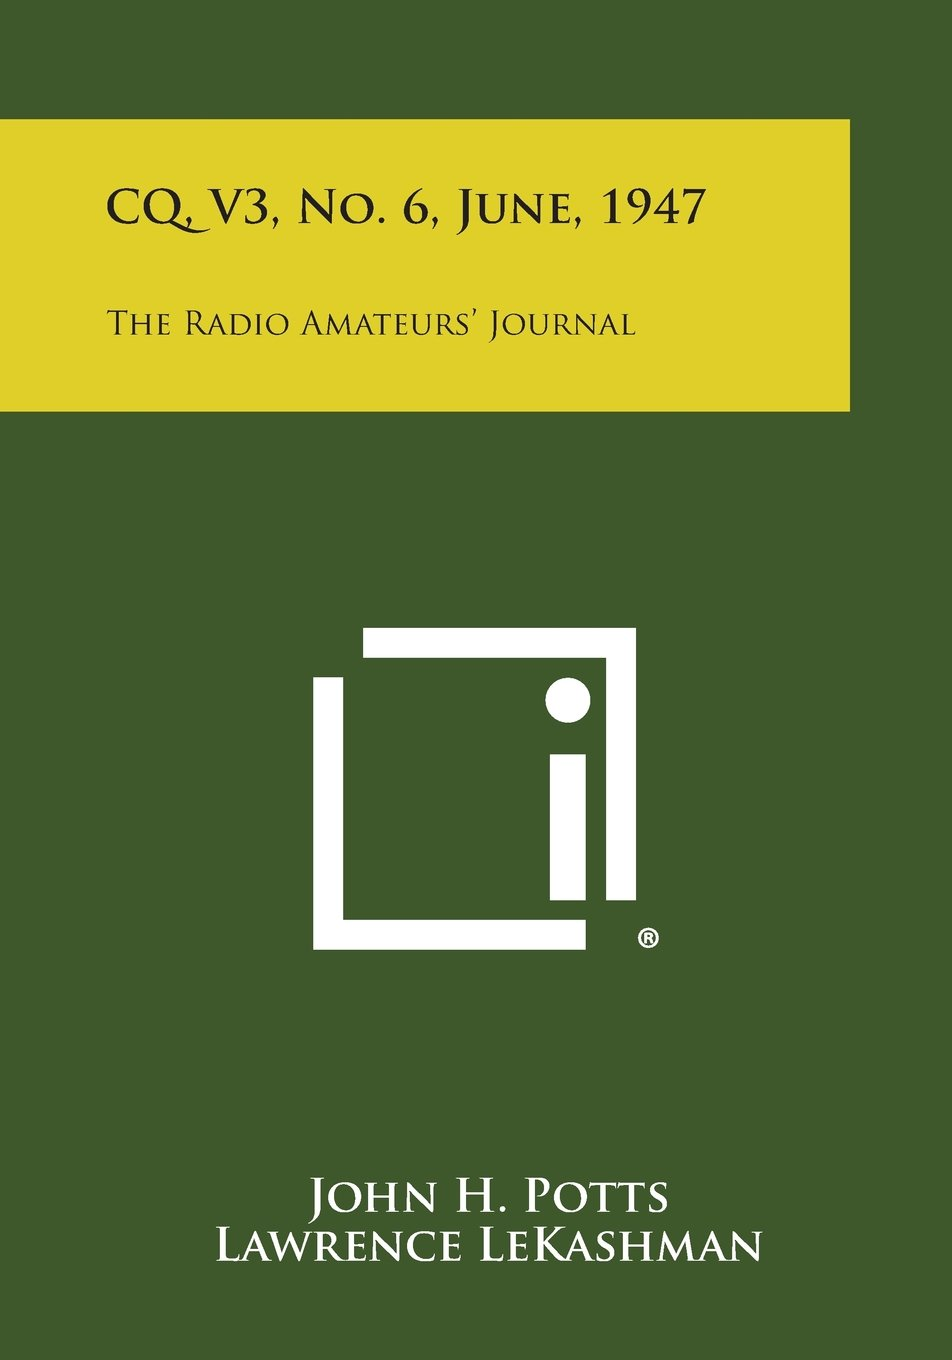 CQ, V3, No. 6, June, 1947: The Radio Amateurs' Journal pdf